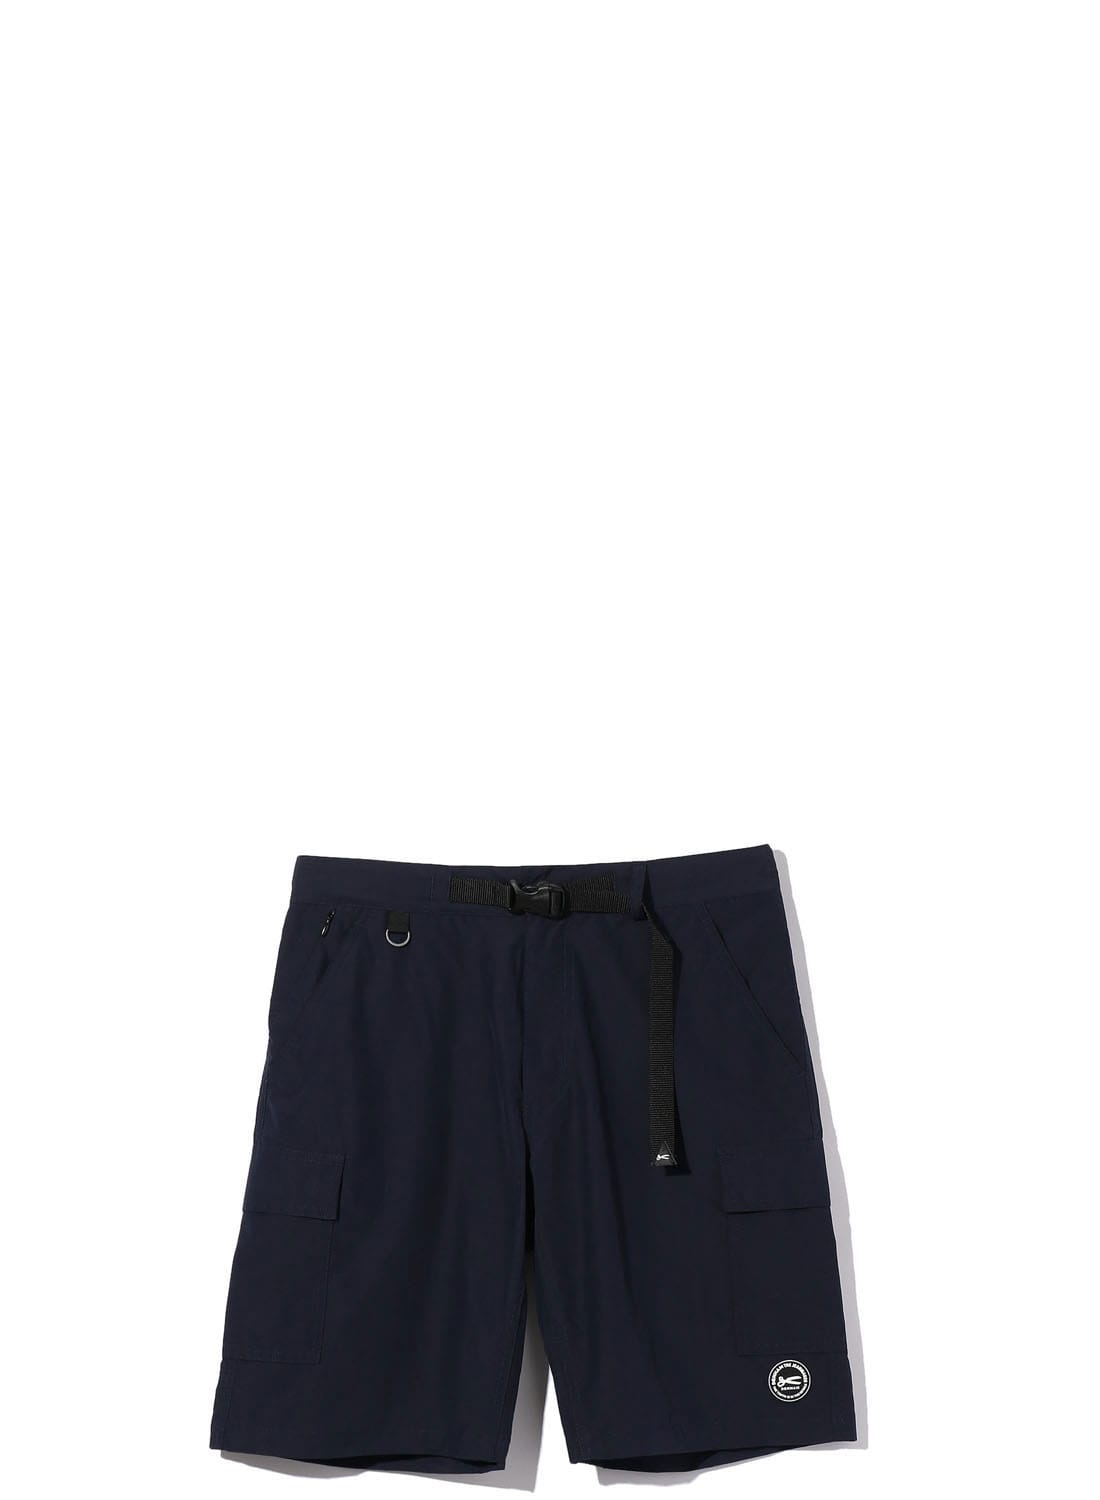 【日本限定】 DOWNTOWN SHORTS